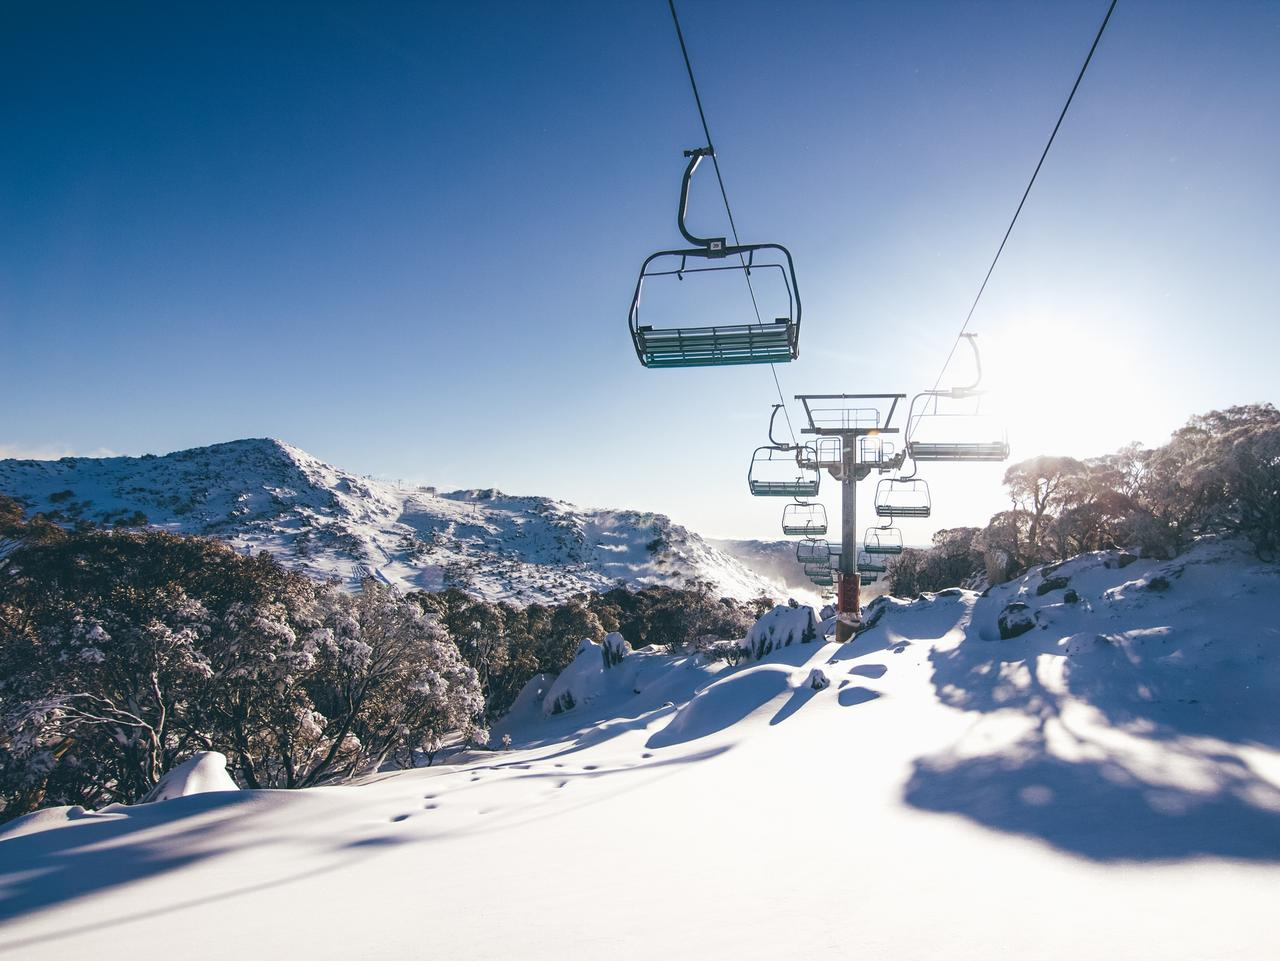 Supplied Travel AUST SKI STORY - Perisher sunrise. Sunrise from the Terminal Chair,  at Blue Cow. Credit: Perisher